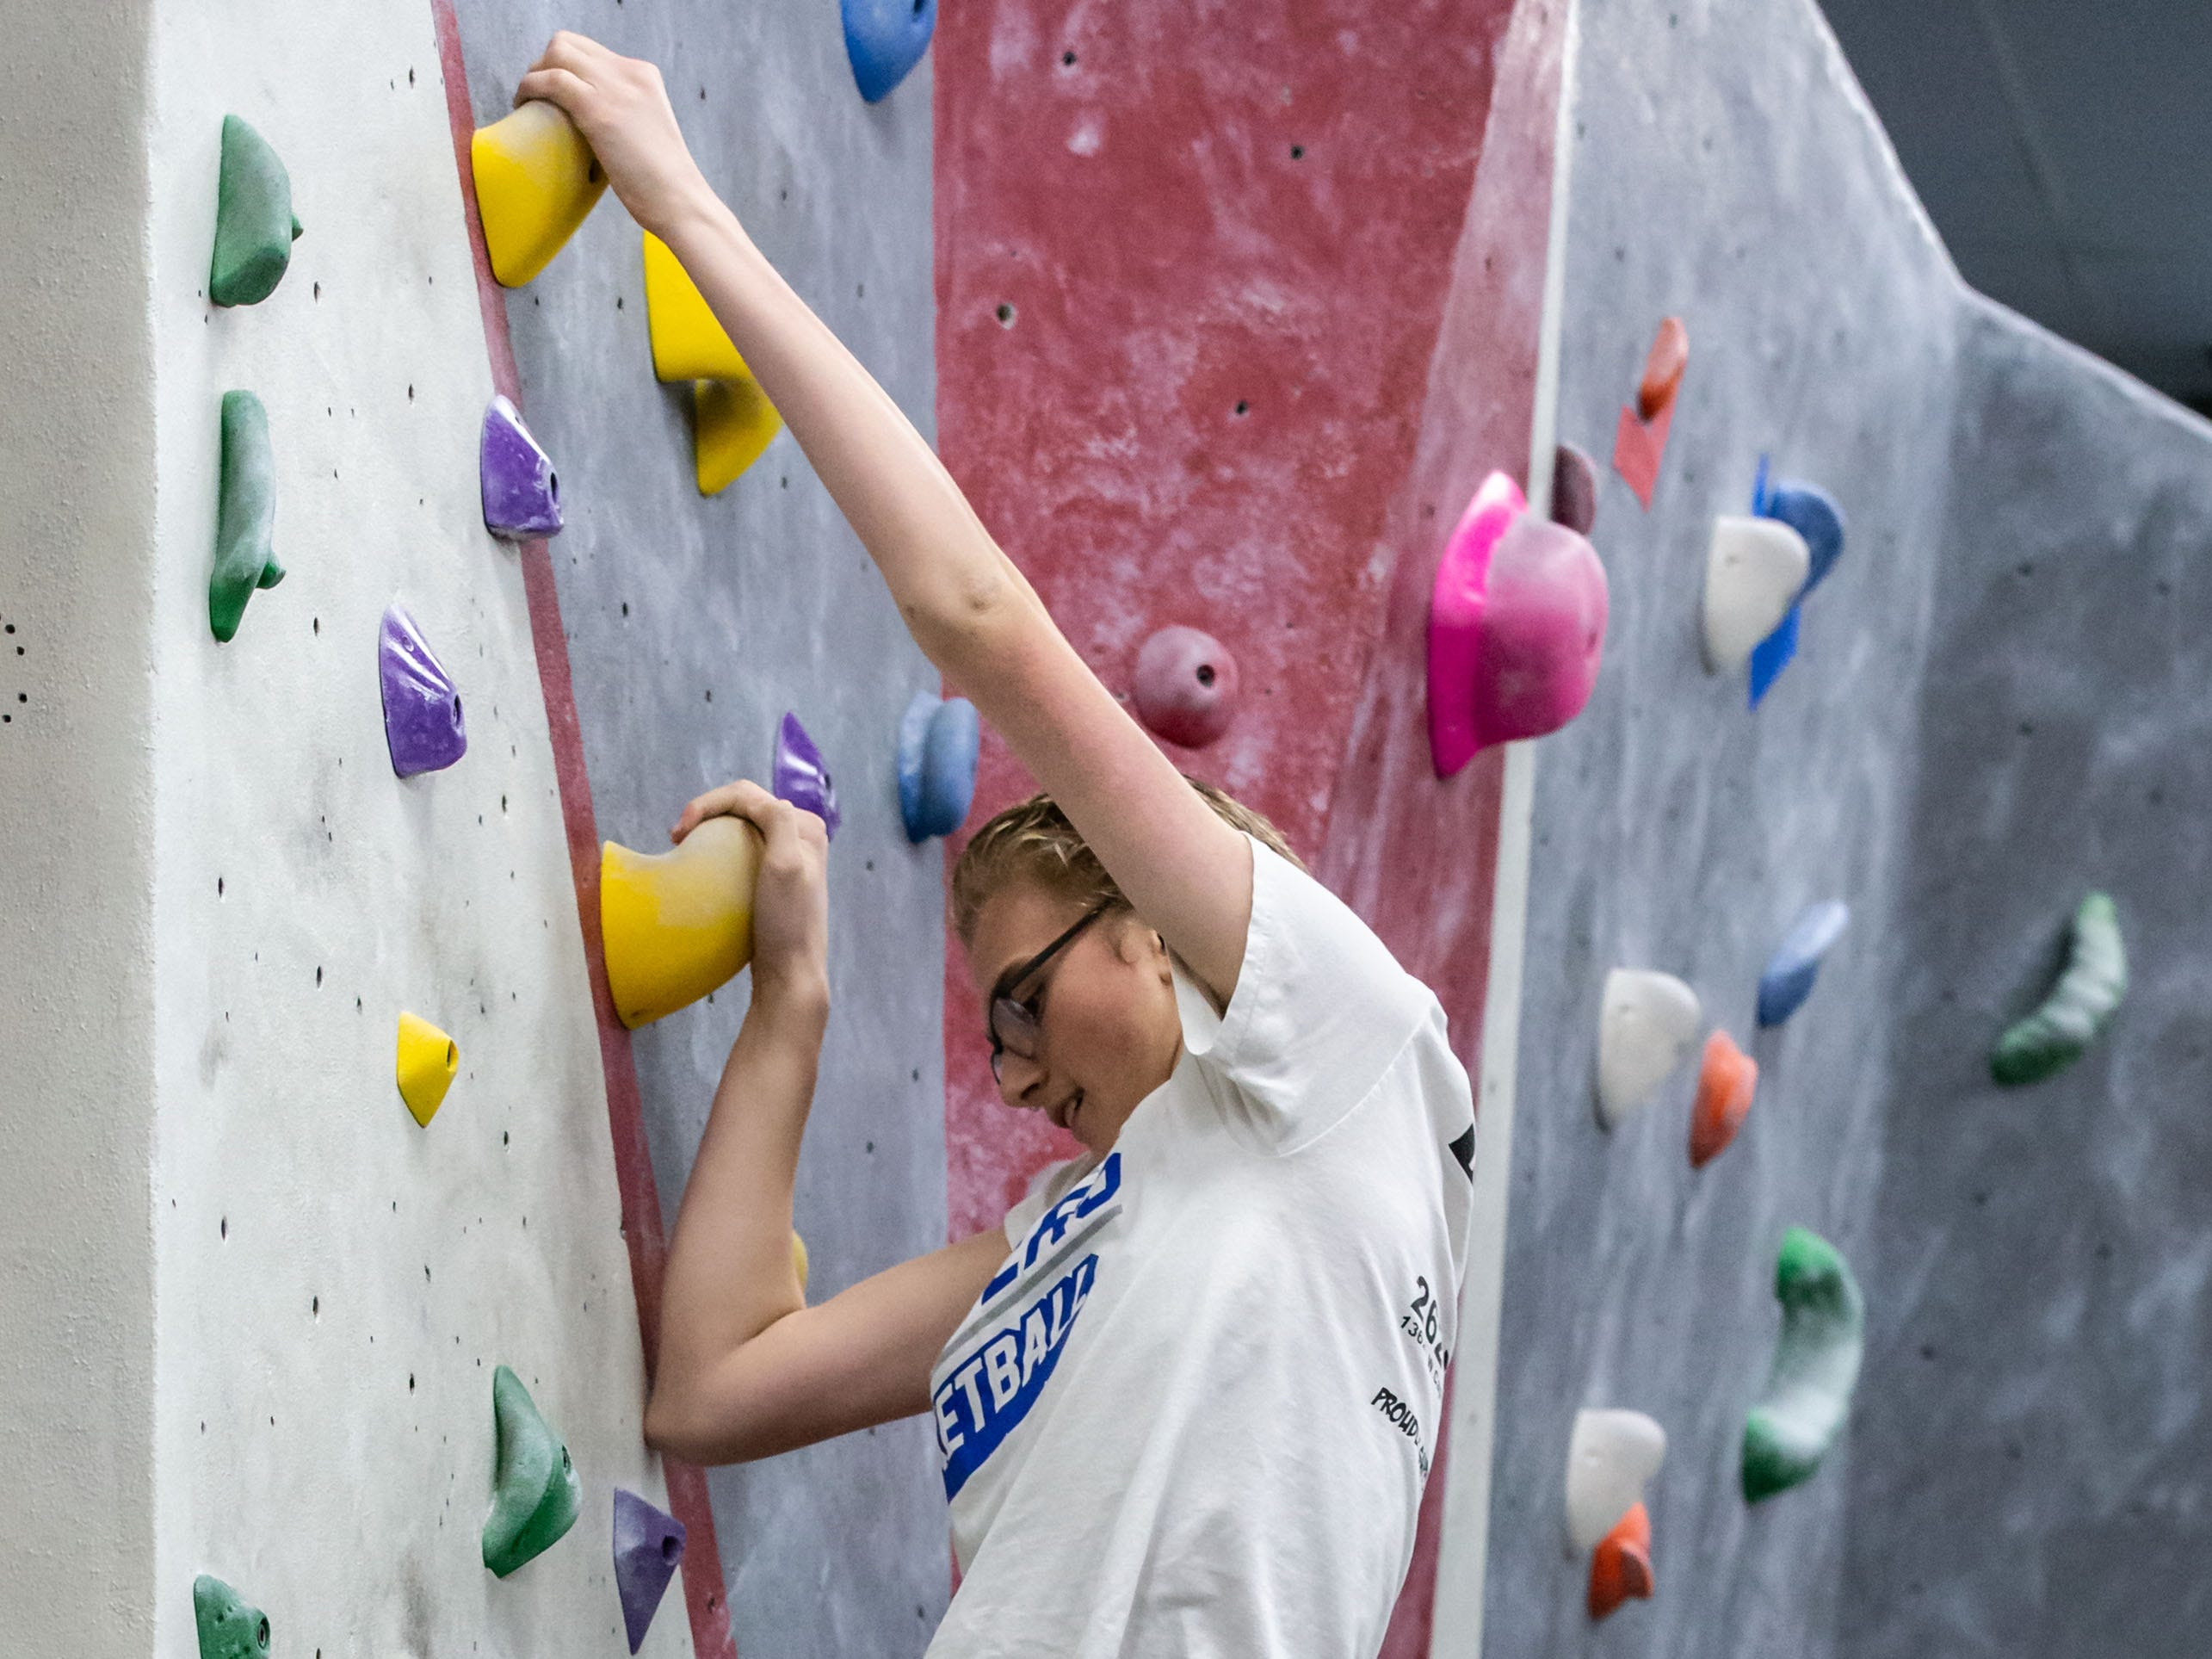 Brookfield Central freshman Matthew Nelson scales a bouldering wall during practice with his high school climbing team at Adventure Rock in Brookfield on Monday, Jan. 7, 2019.